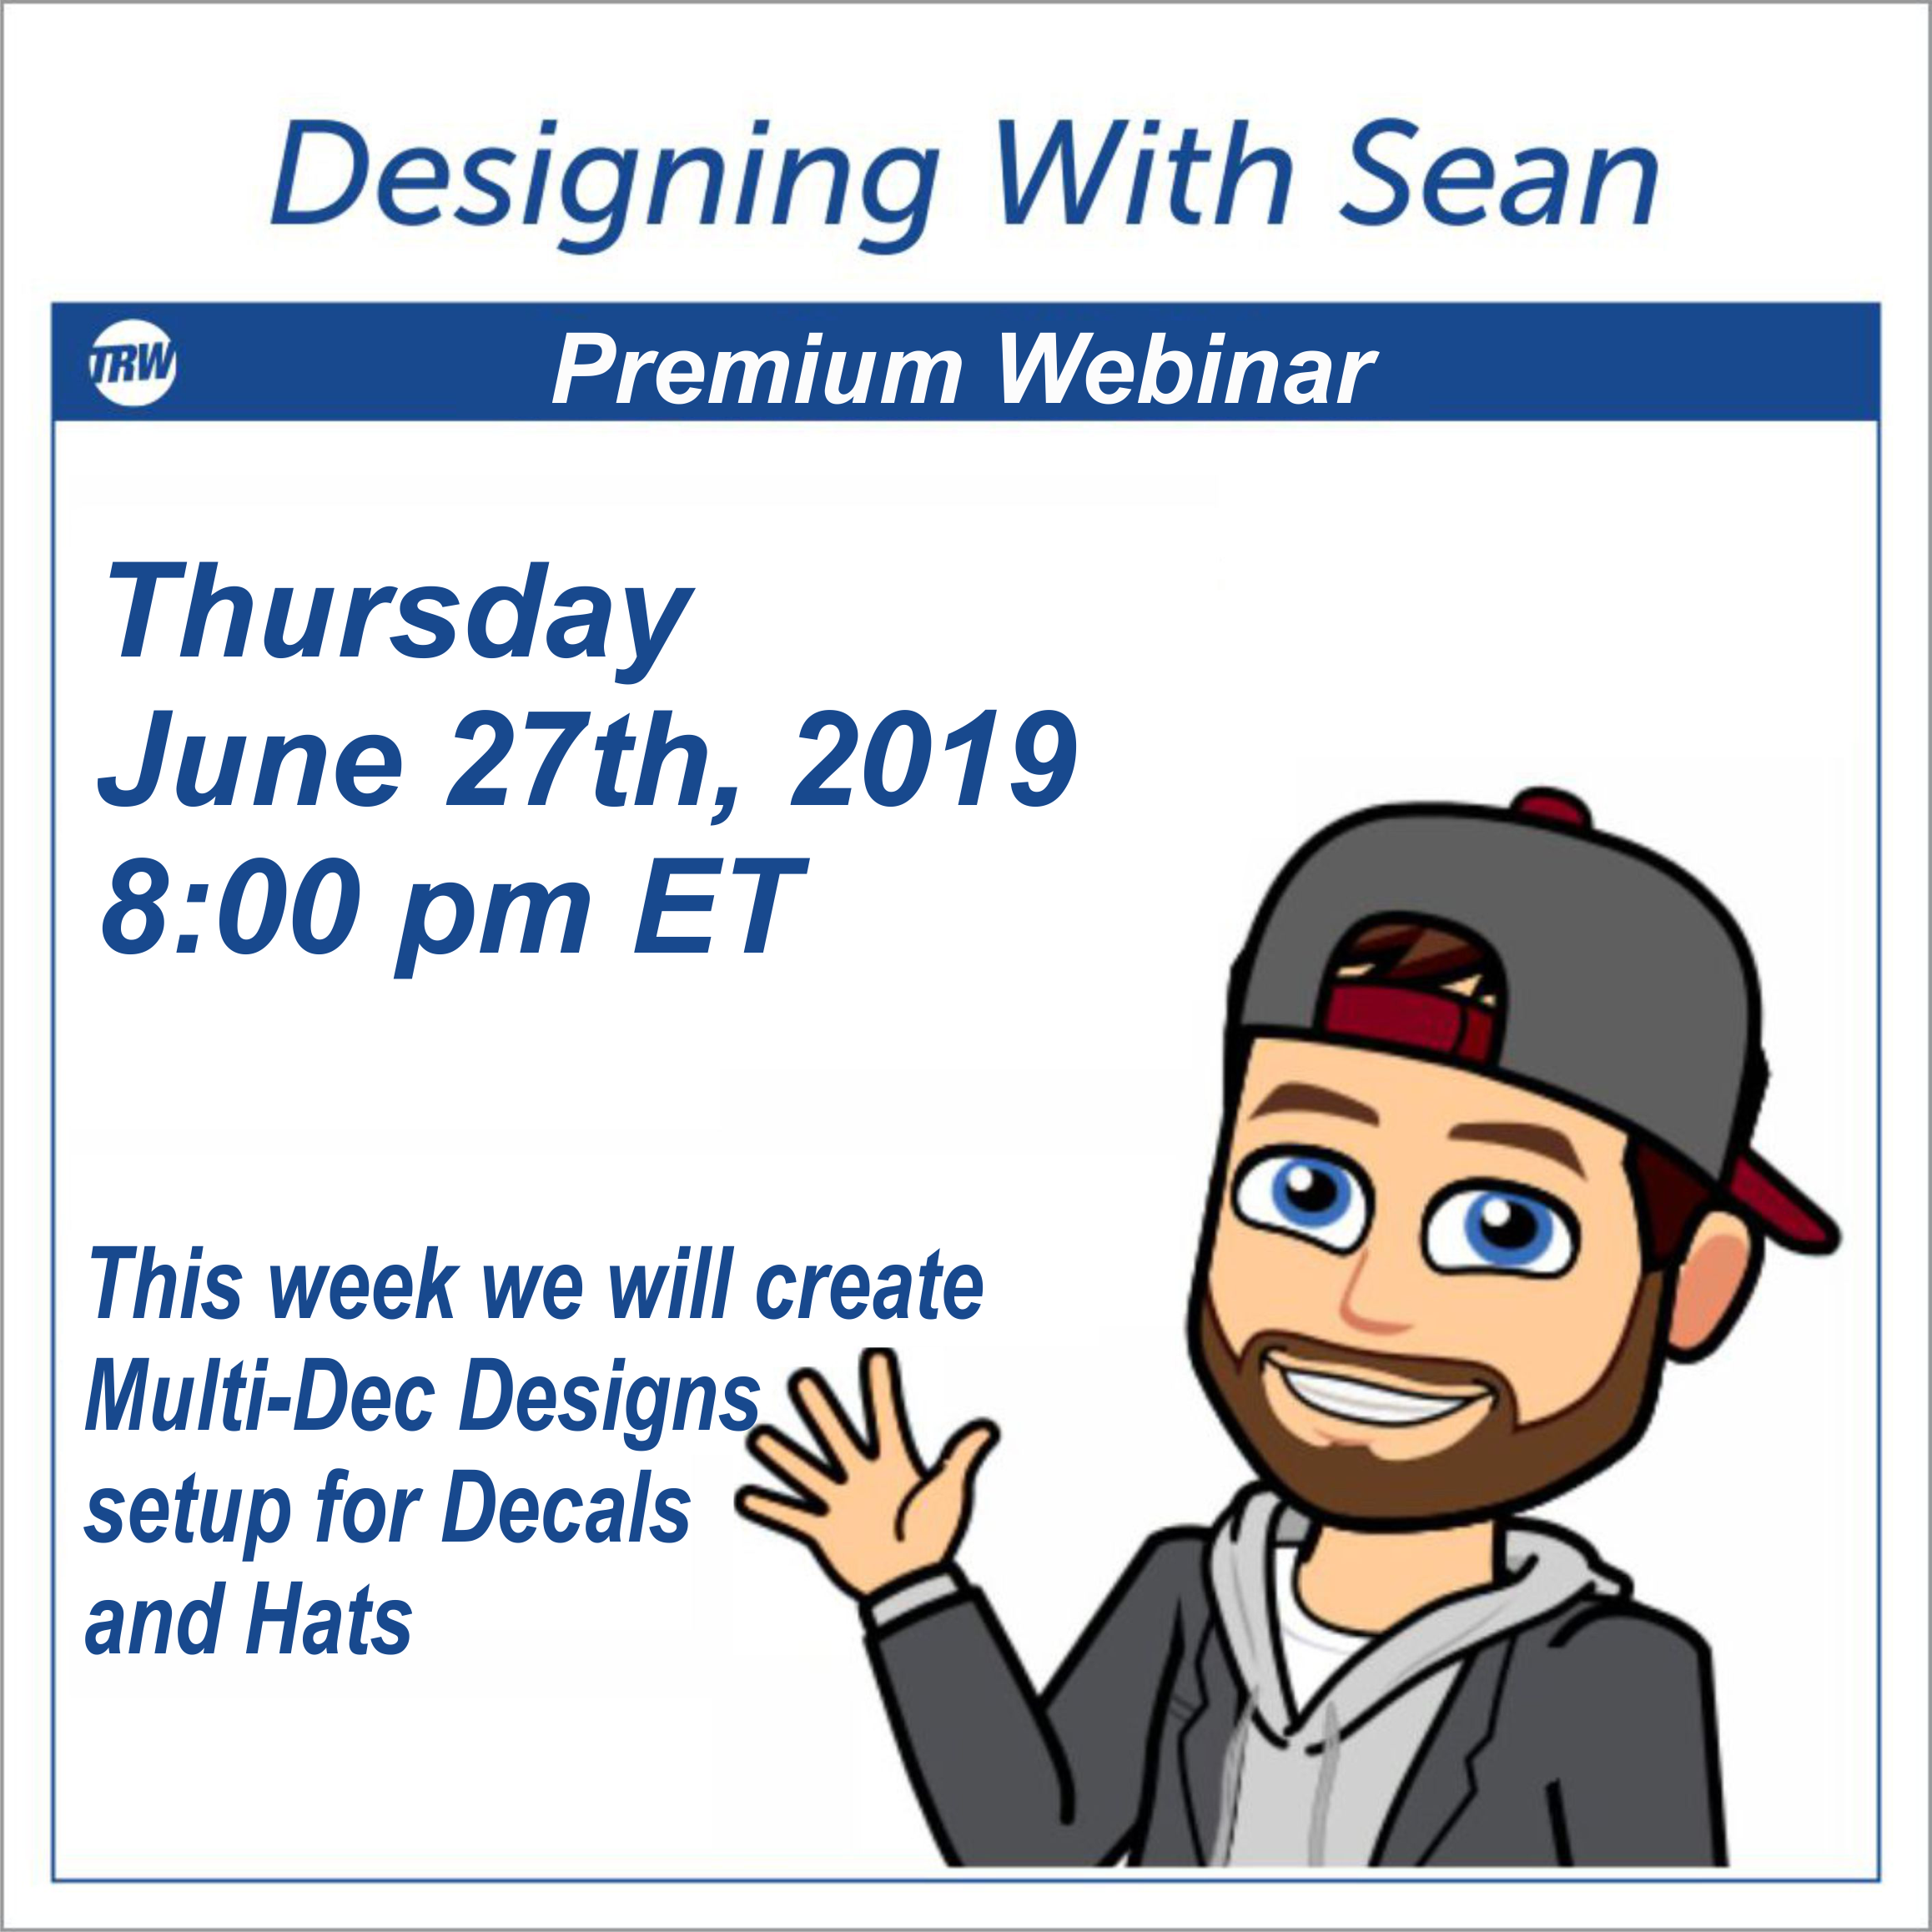 Designing with Sean - Creating Mutli-Dec Designs for Decals and Hats- June 27th 2019  8:00pm ET